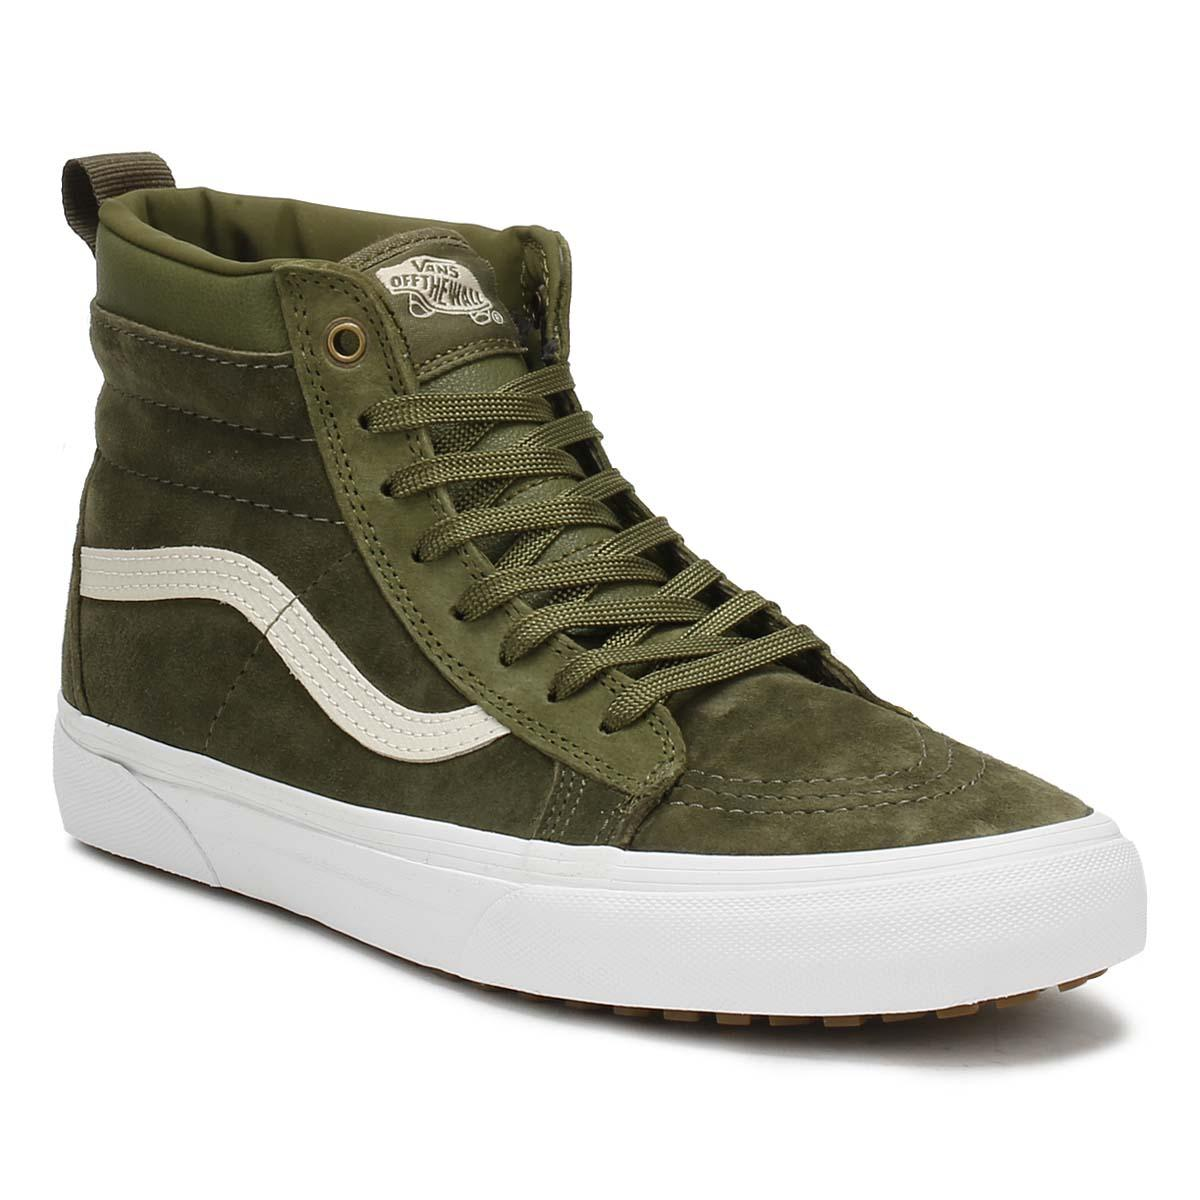 4817354b348f Gallery. Previously sold at  TOWER London · Men s Olukai Eleu Men s Vans  Sk8 Hi ...